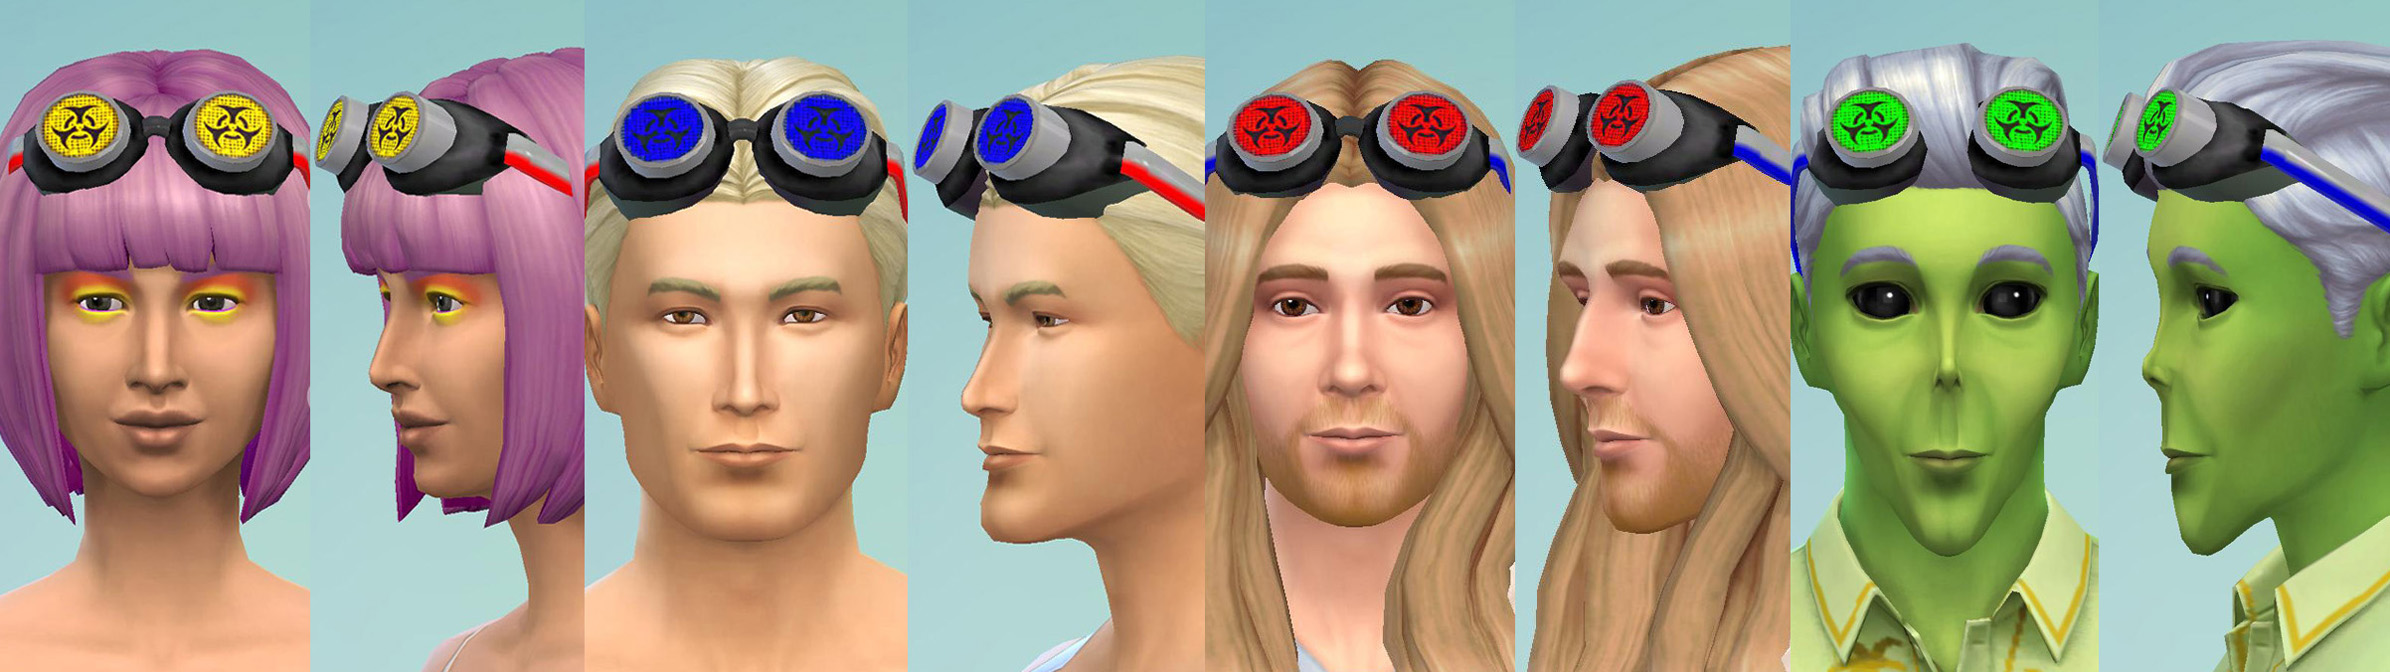 Sims 2 Rave Goggles + Assorted Retextures by Esmeralda